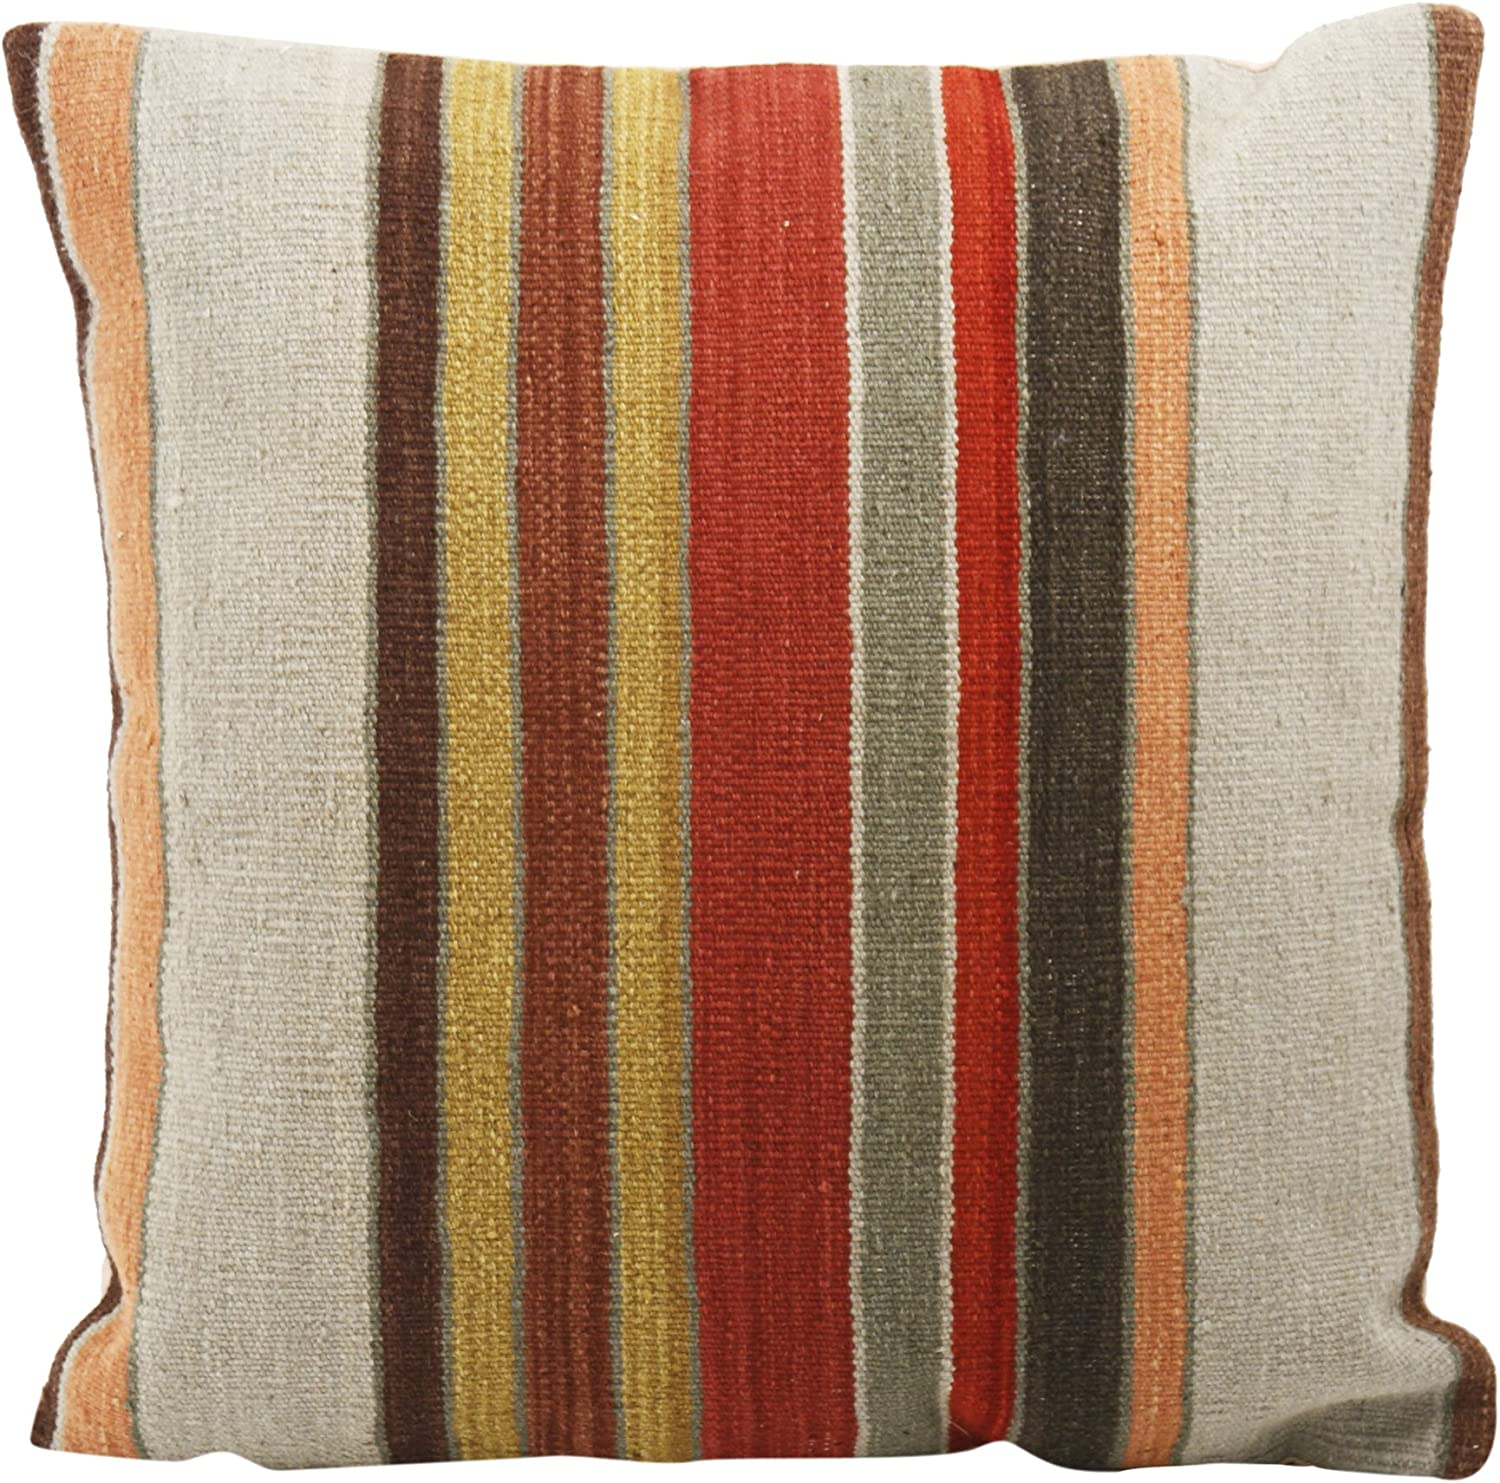 Zentique Throw Pillow With Buttons Throw Pillows Decorative Pillows Inserts Covers